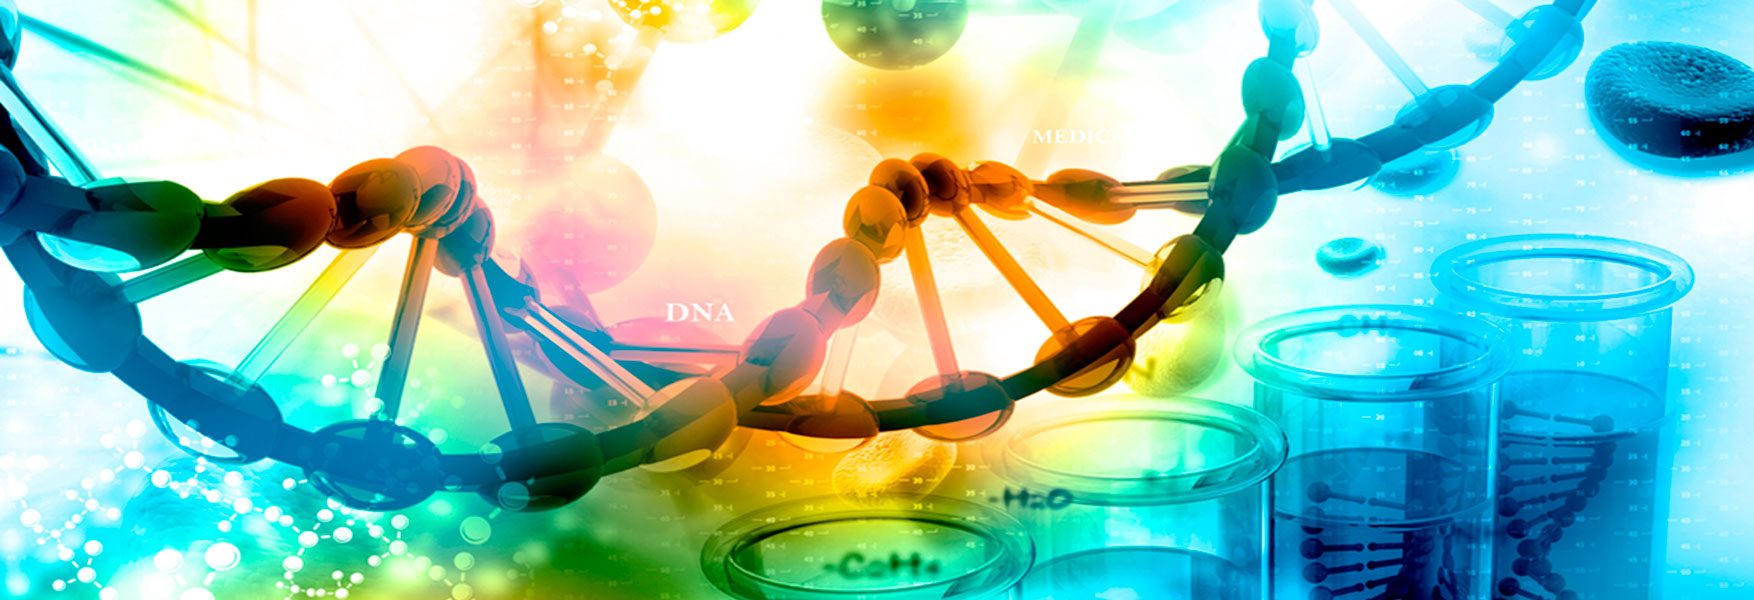 the century of the gene molecular biology and genetics openmind